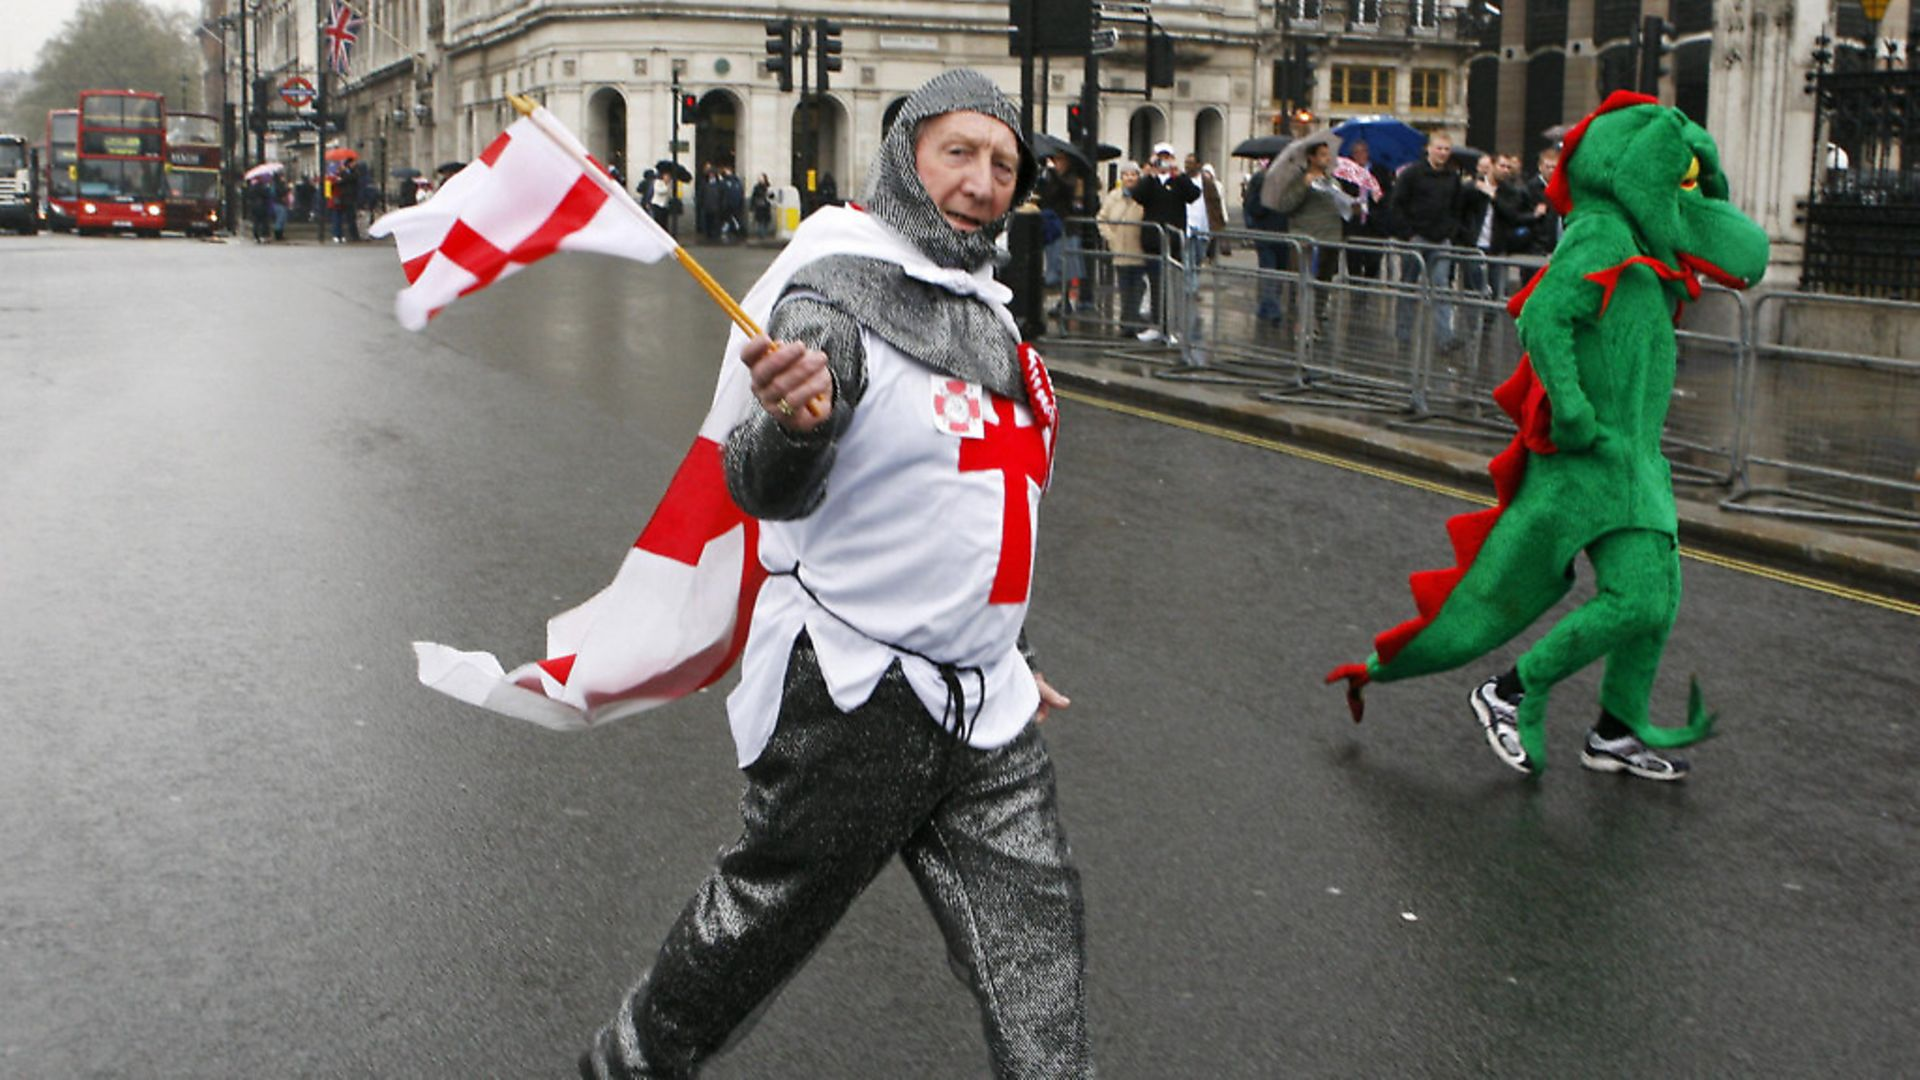 A man dressed as Saint George crosses the road beside a man dressed as a dragon outside the Houses of Parliament as part of a political protest by The English Democrats. (ADRIAN DENNIS/AFP/Getty Images) - Credit: AFP/Getty Images